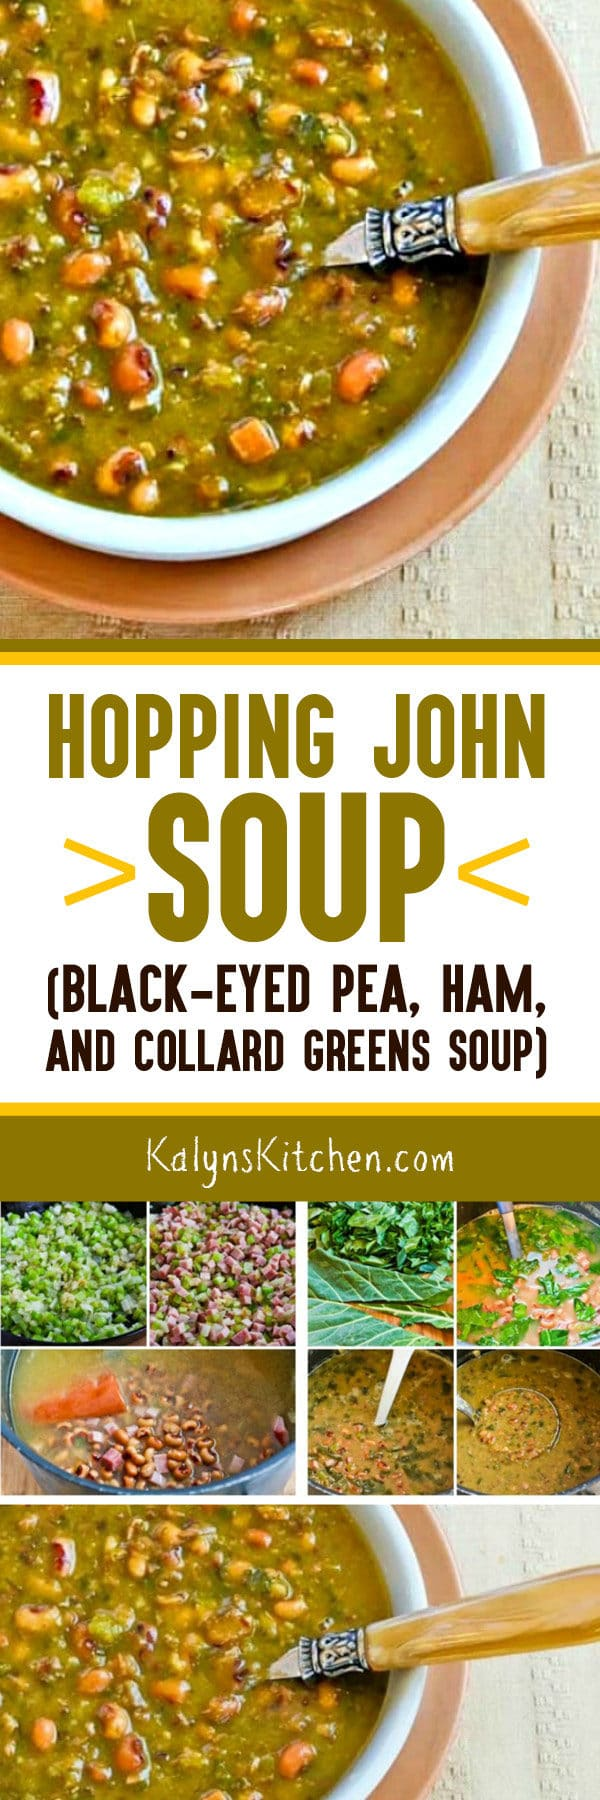 Hopping John Soup for Good Luck in the New Year (Black-Eyed Pea, Ham, and Collard Greens Soup) found on KalynsKitchen.com